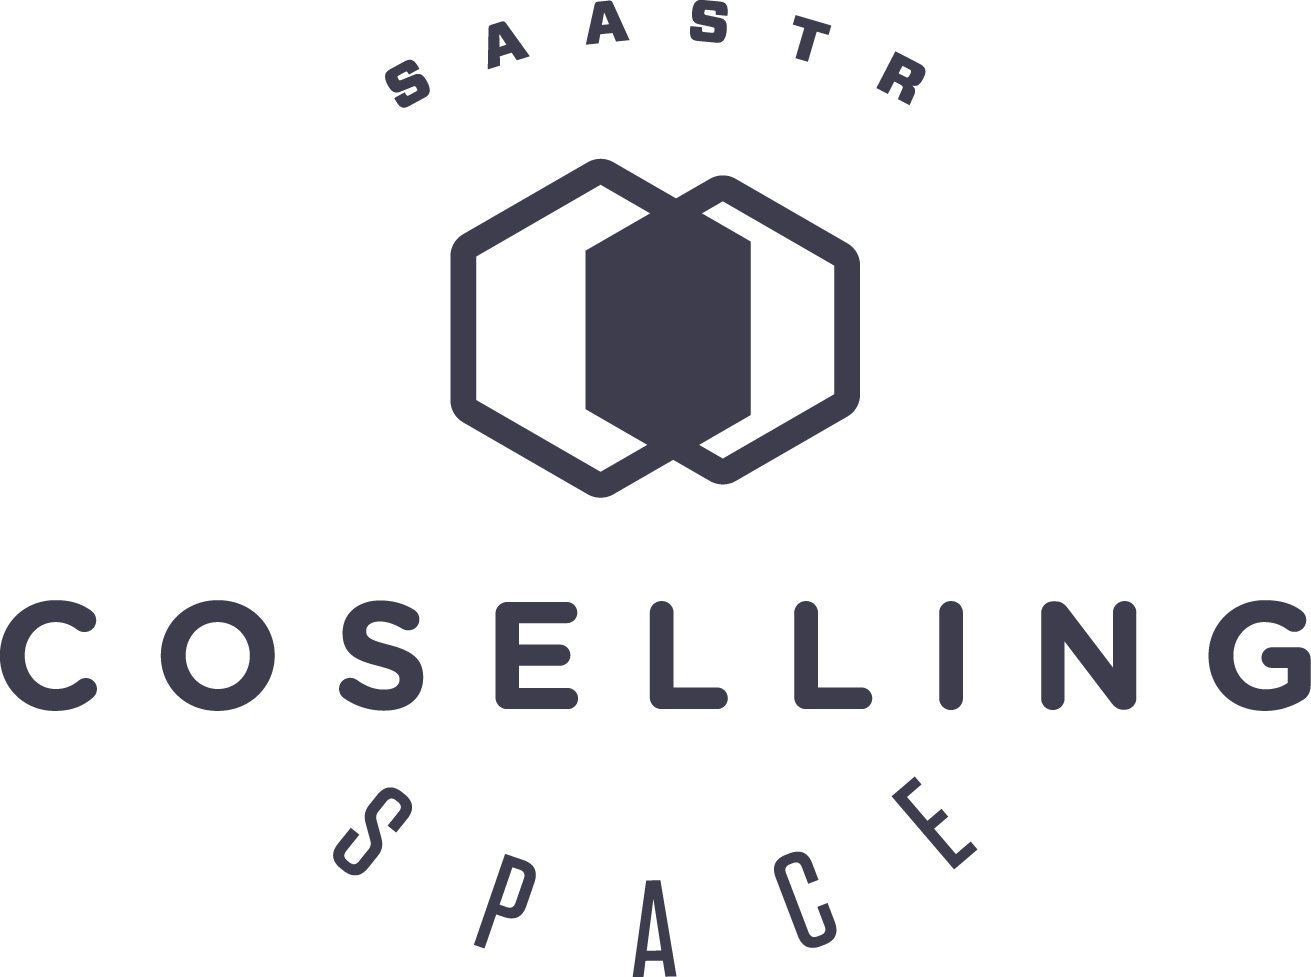 SaaStr CoSelling Space (CSS) - an exclusive San Francisco coworking space for post-revenue SaaS startup teams